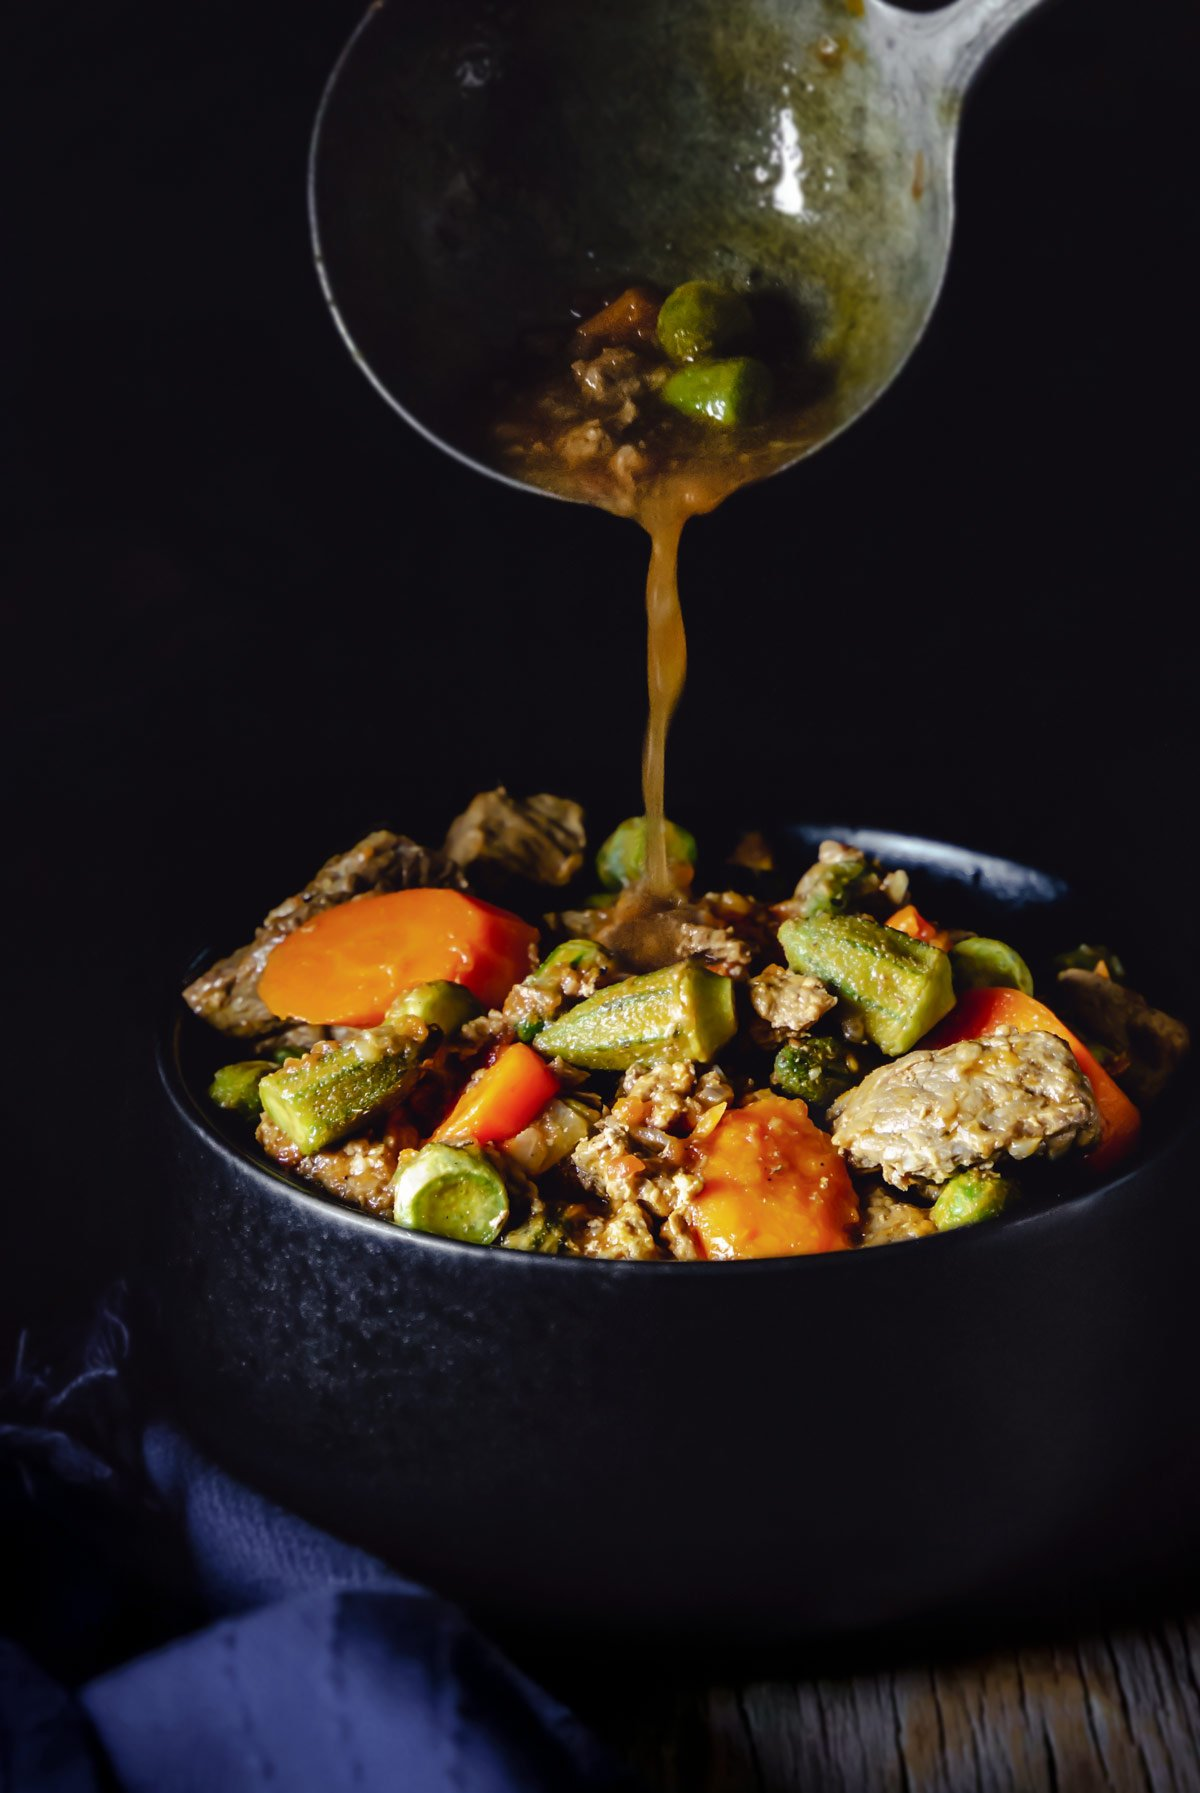 A ladle pouring the okra stew over a black bowl with meat and vegetables.